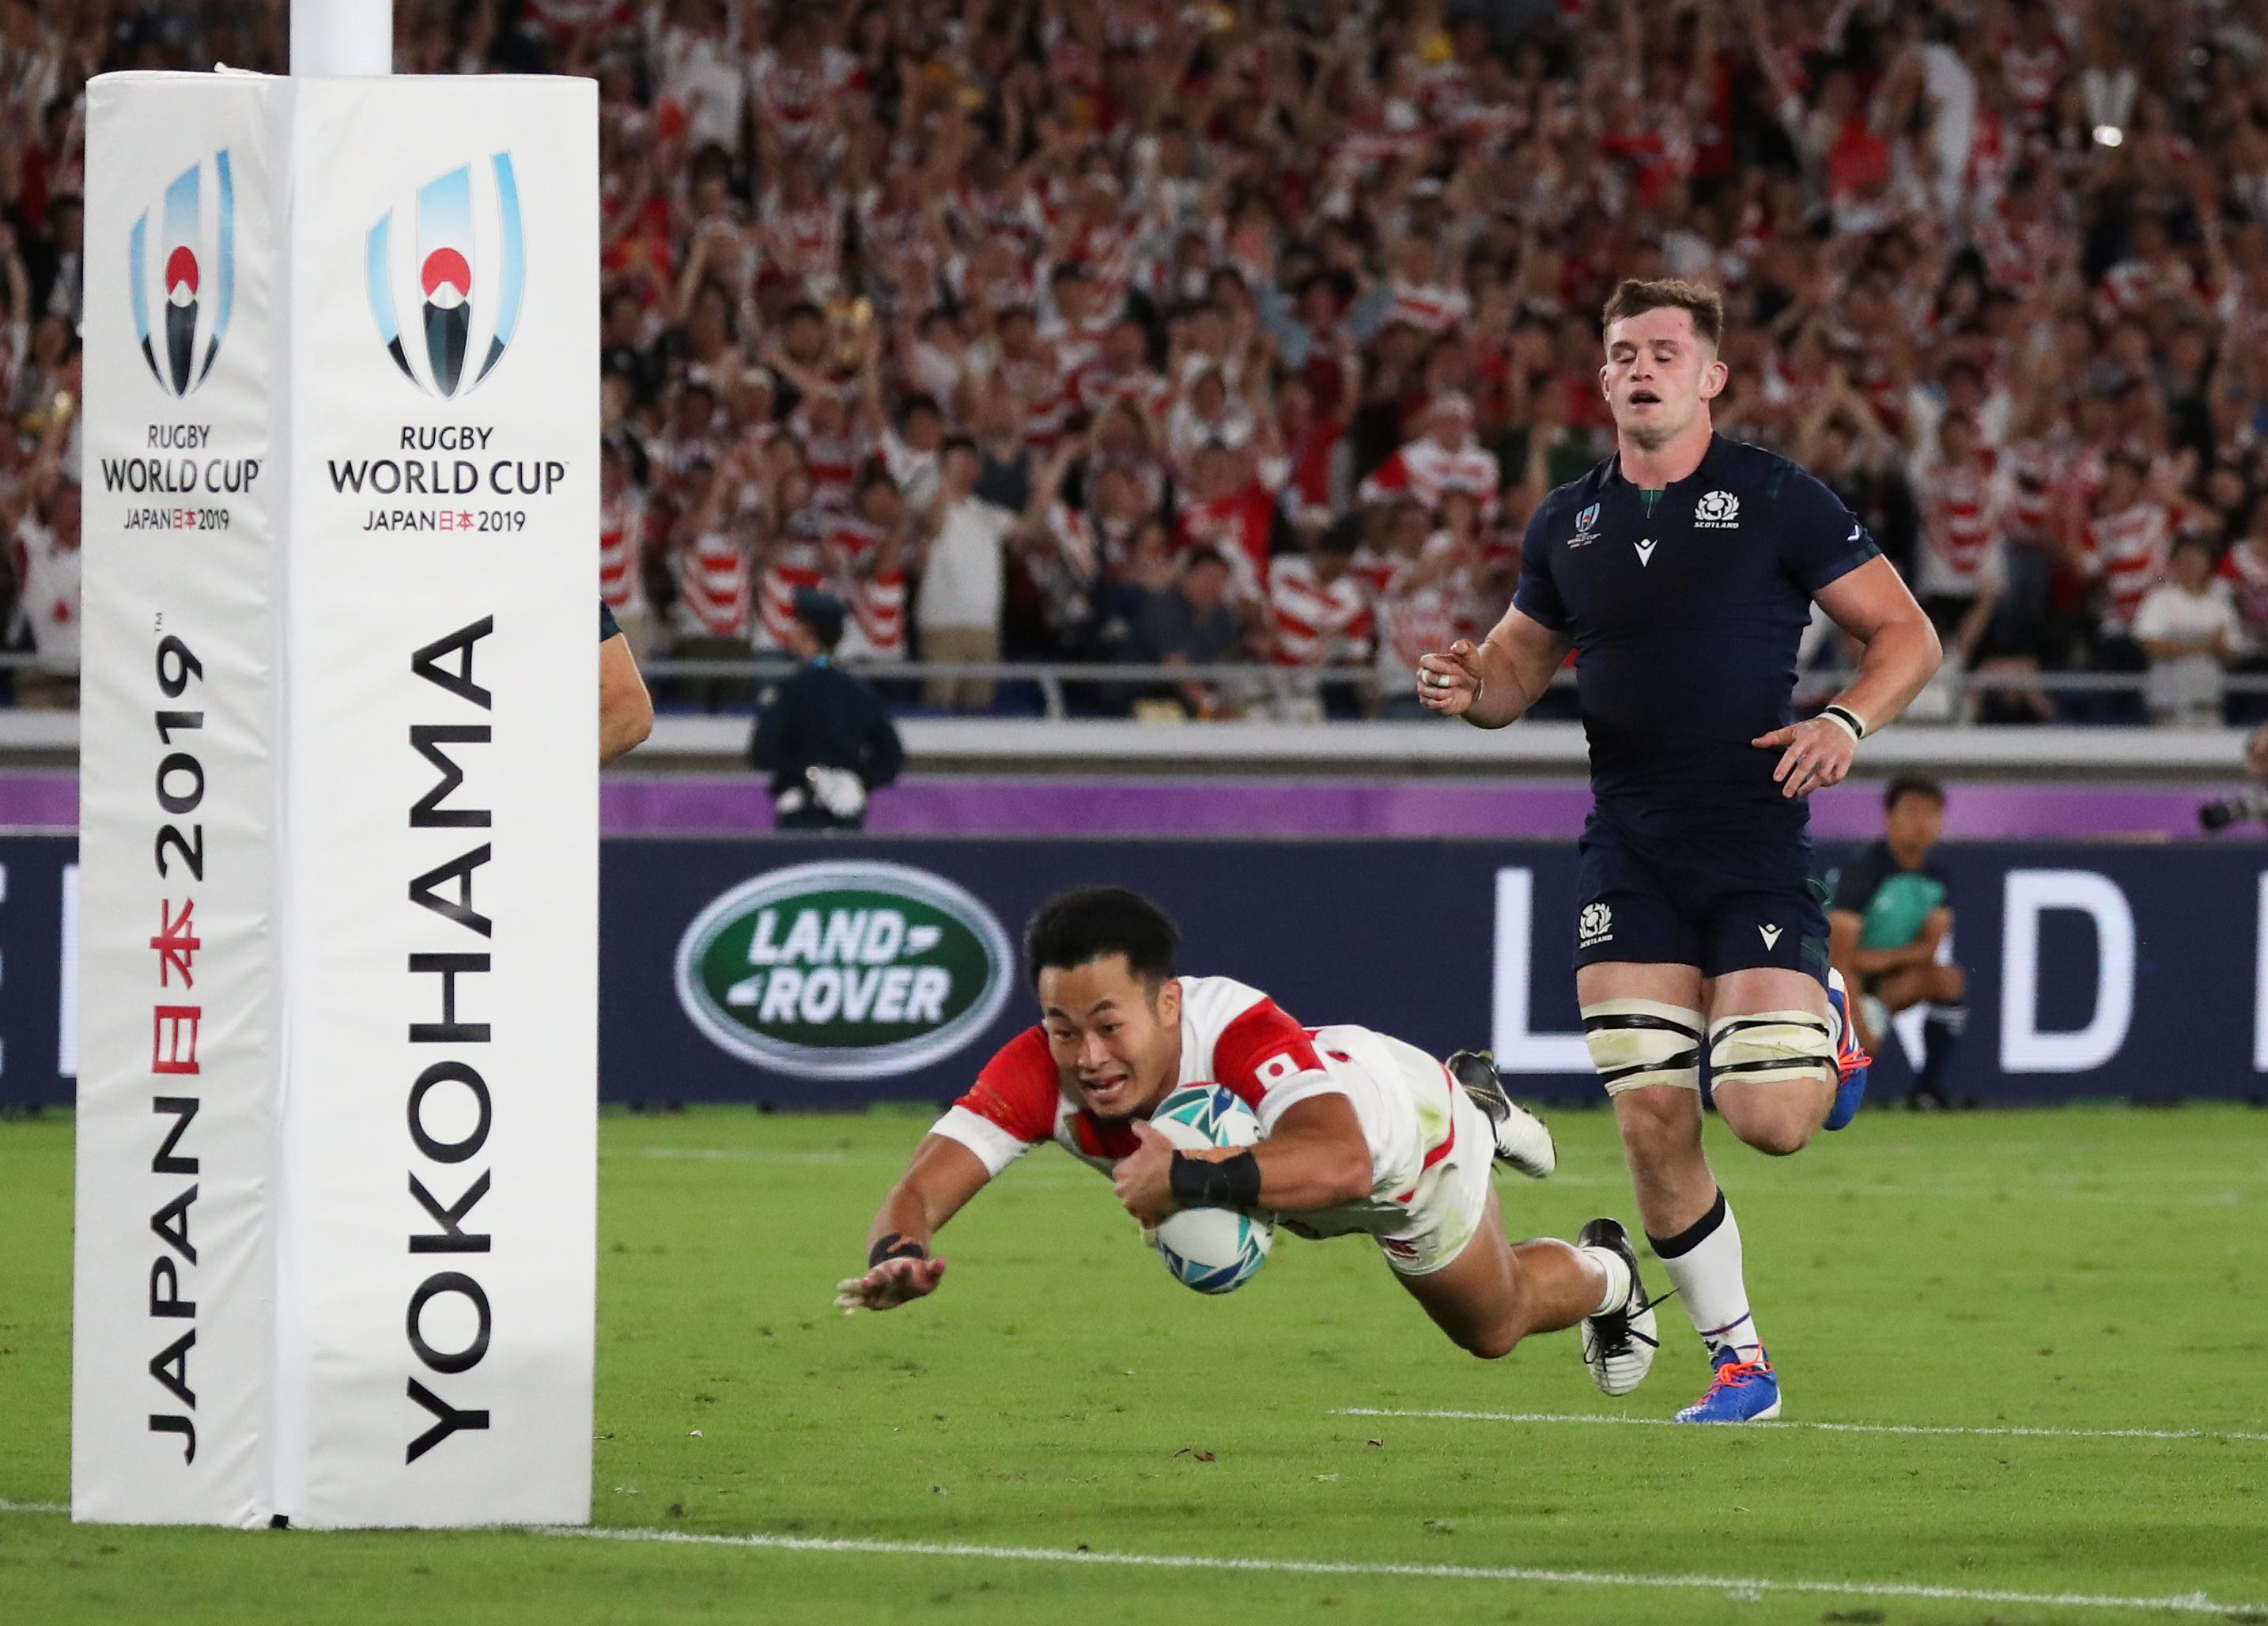 Japan roar into the quarters for first time to lift the nation